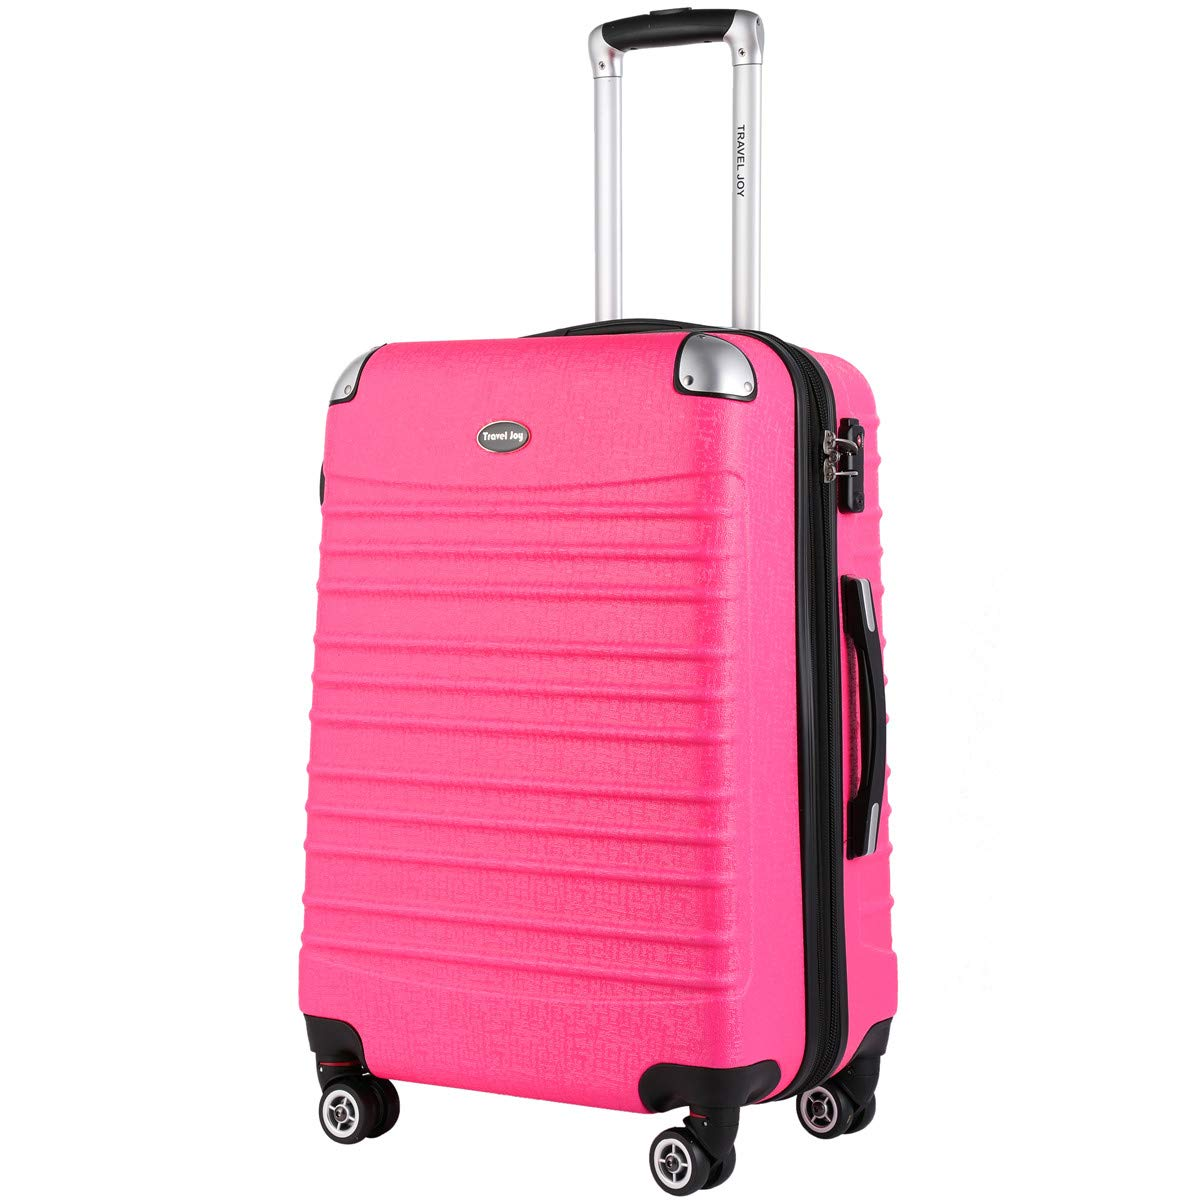 Expandable Carry On Luggage, Lightweight Spinner Carry Ons, Travel Collection TSA Carry On Luggage 20 inches (Pink)